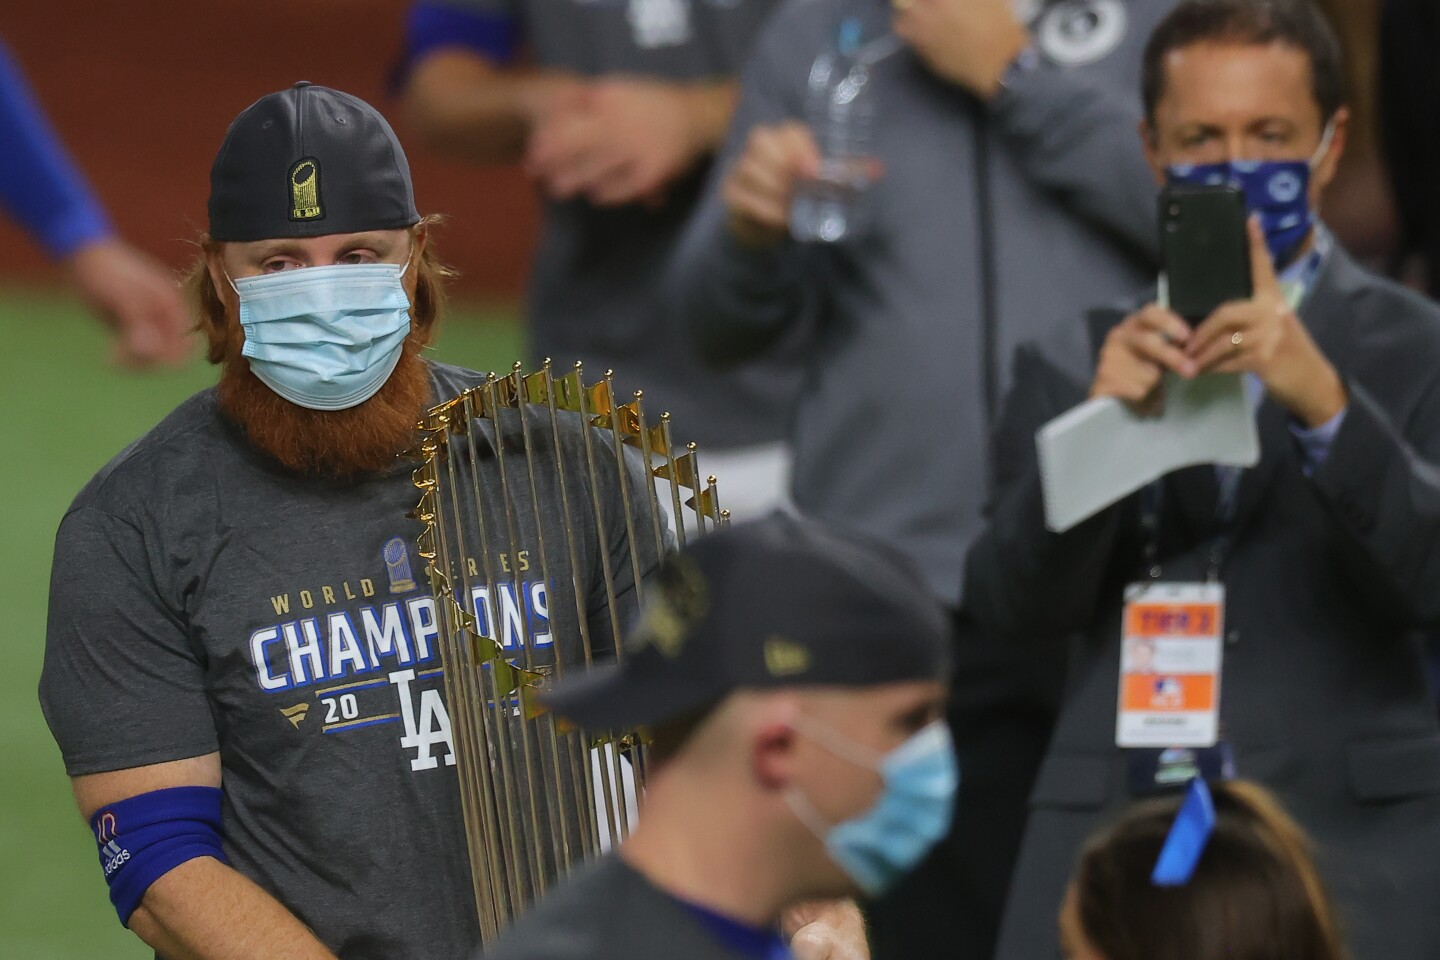 A red-headed and bearded man wearing a face mask holds a golden trophy on a baseball field.